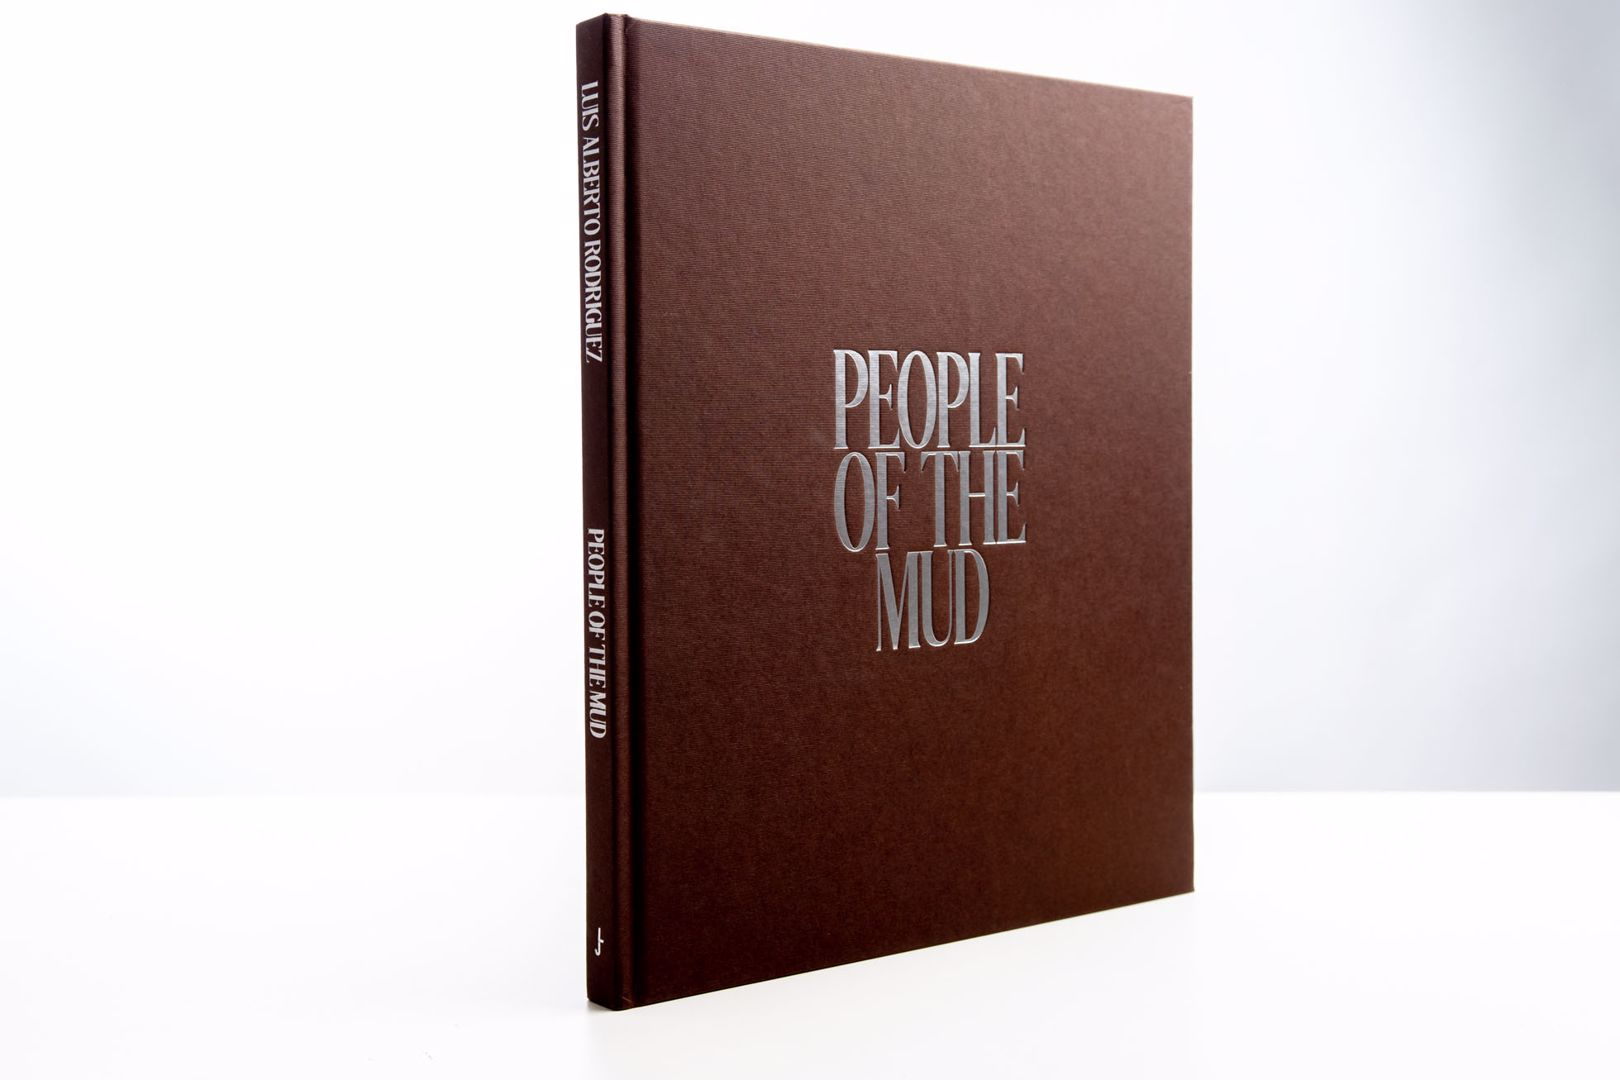 People of the Mud